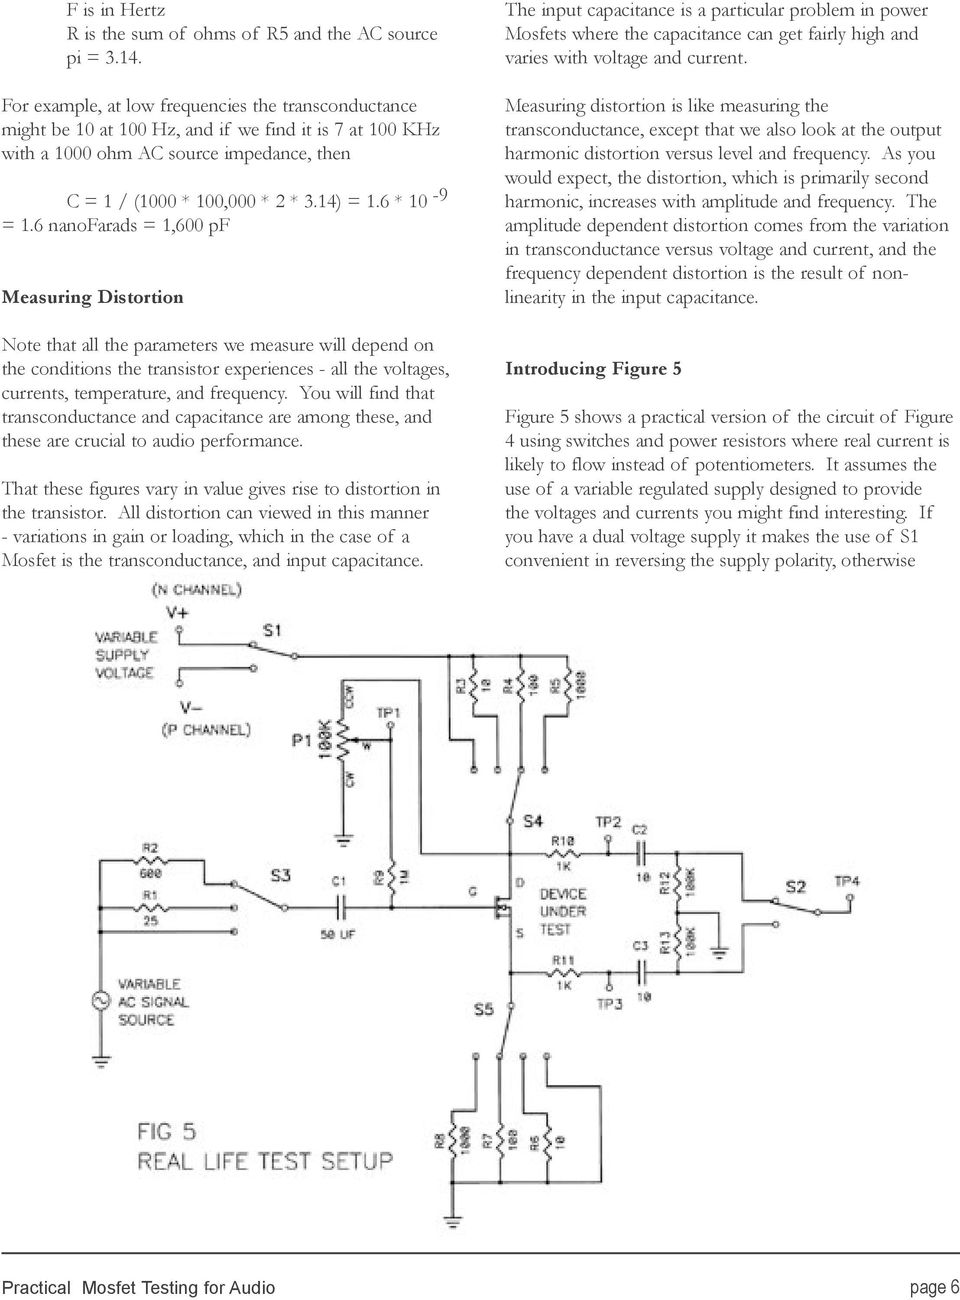 Practical Mosfet Testing For Audio Pdf Class D Amplifier Circuit Lm1036 Tone Controlled Irs2092 6 10 9 1